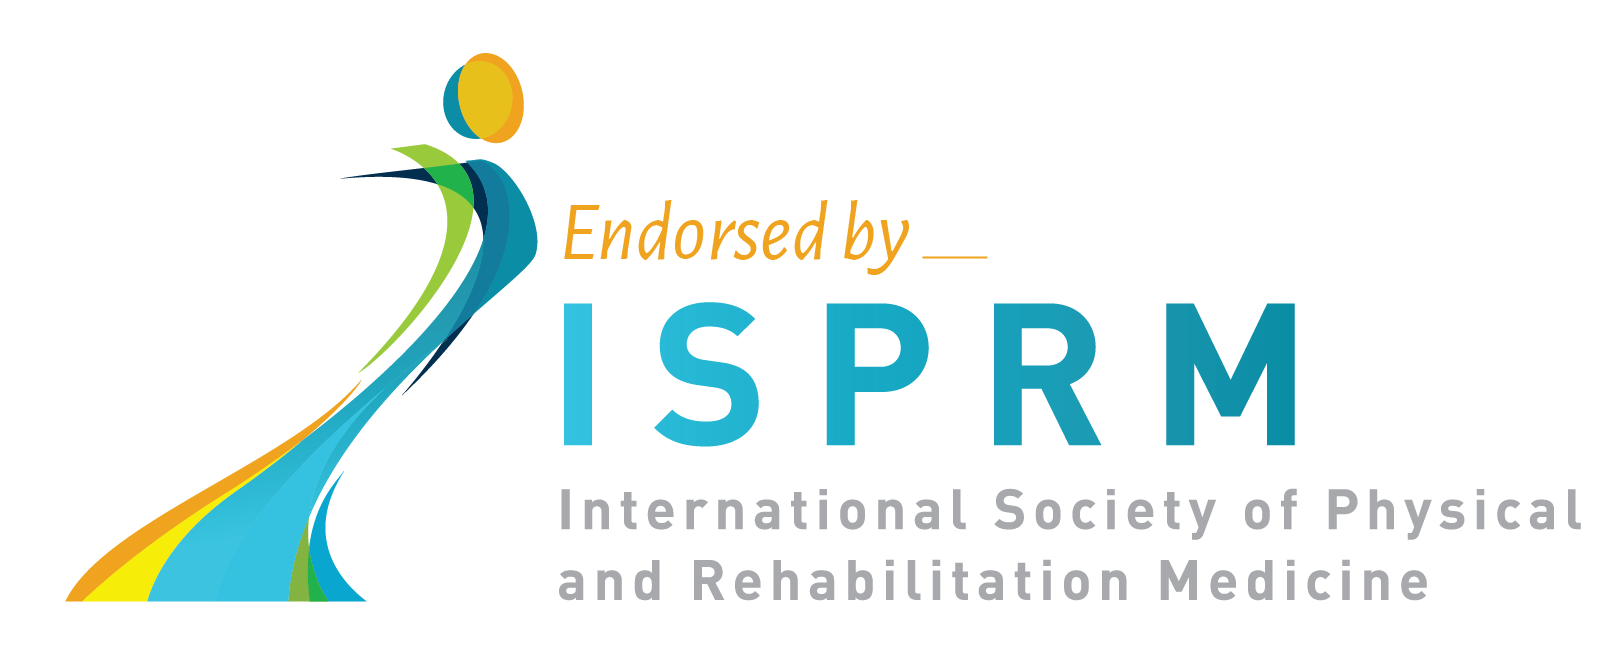 ISPRM Event Endorsement